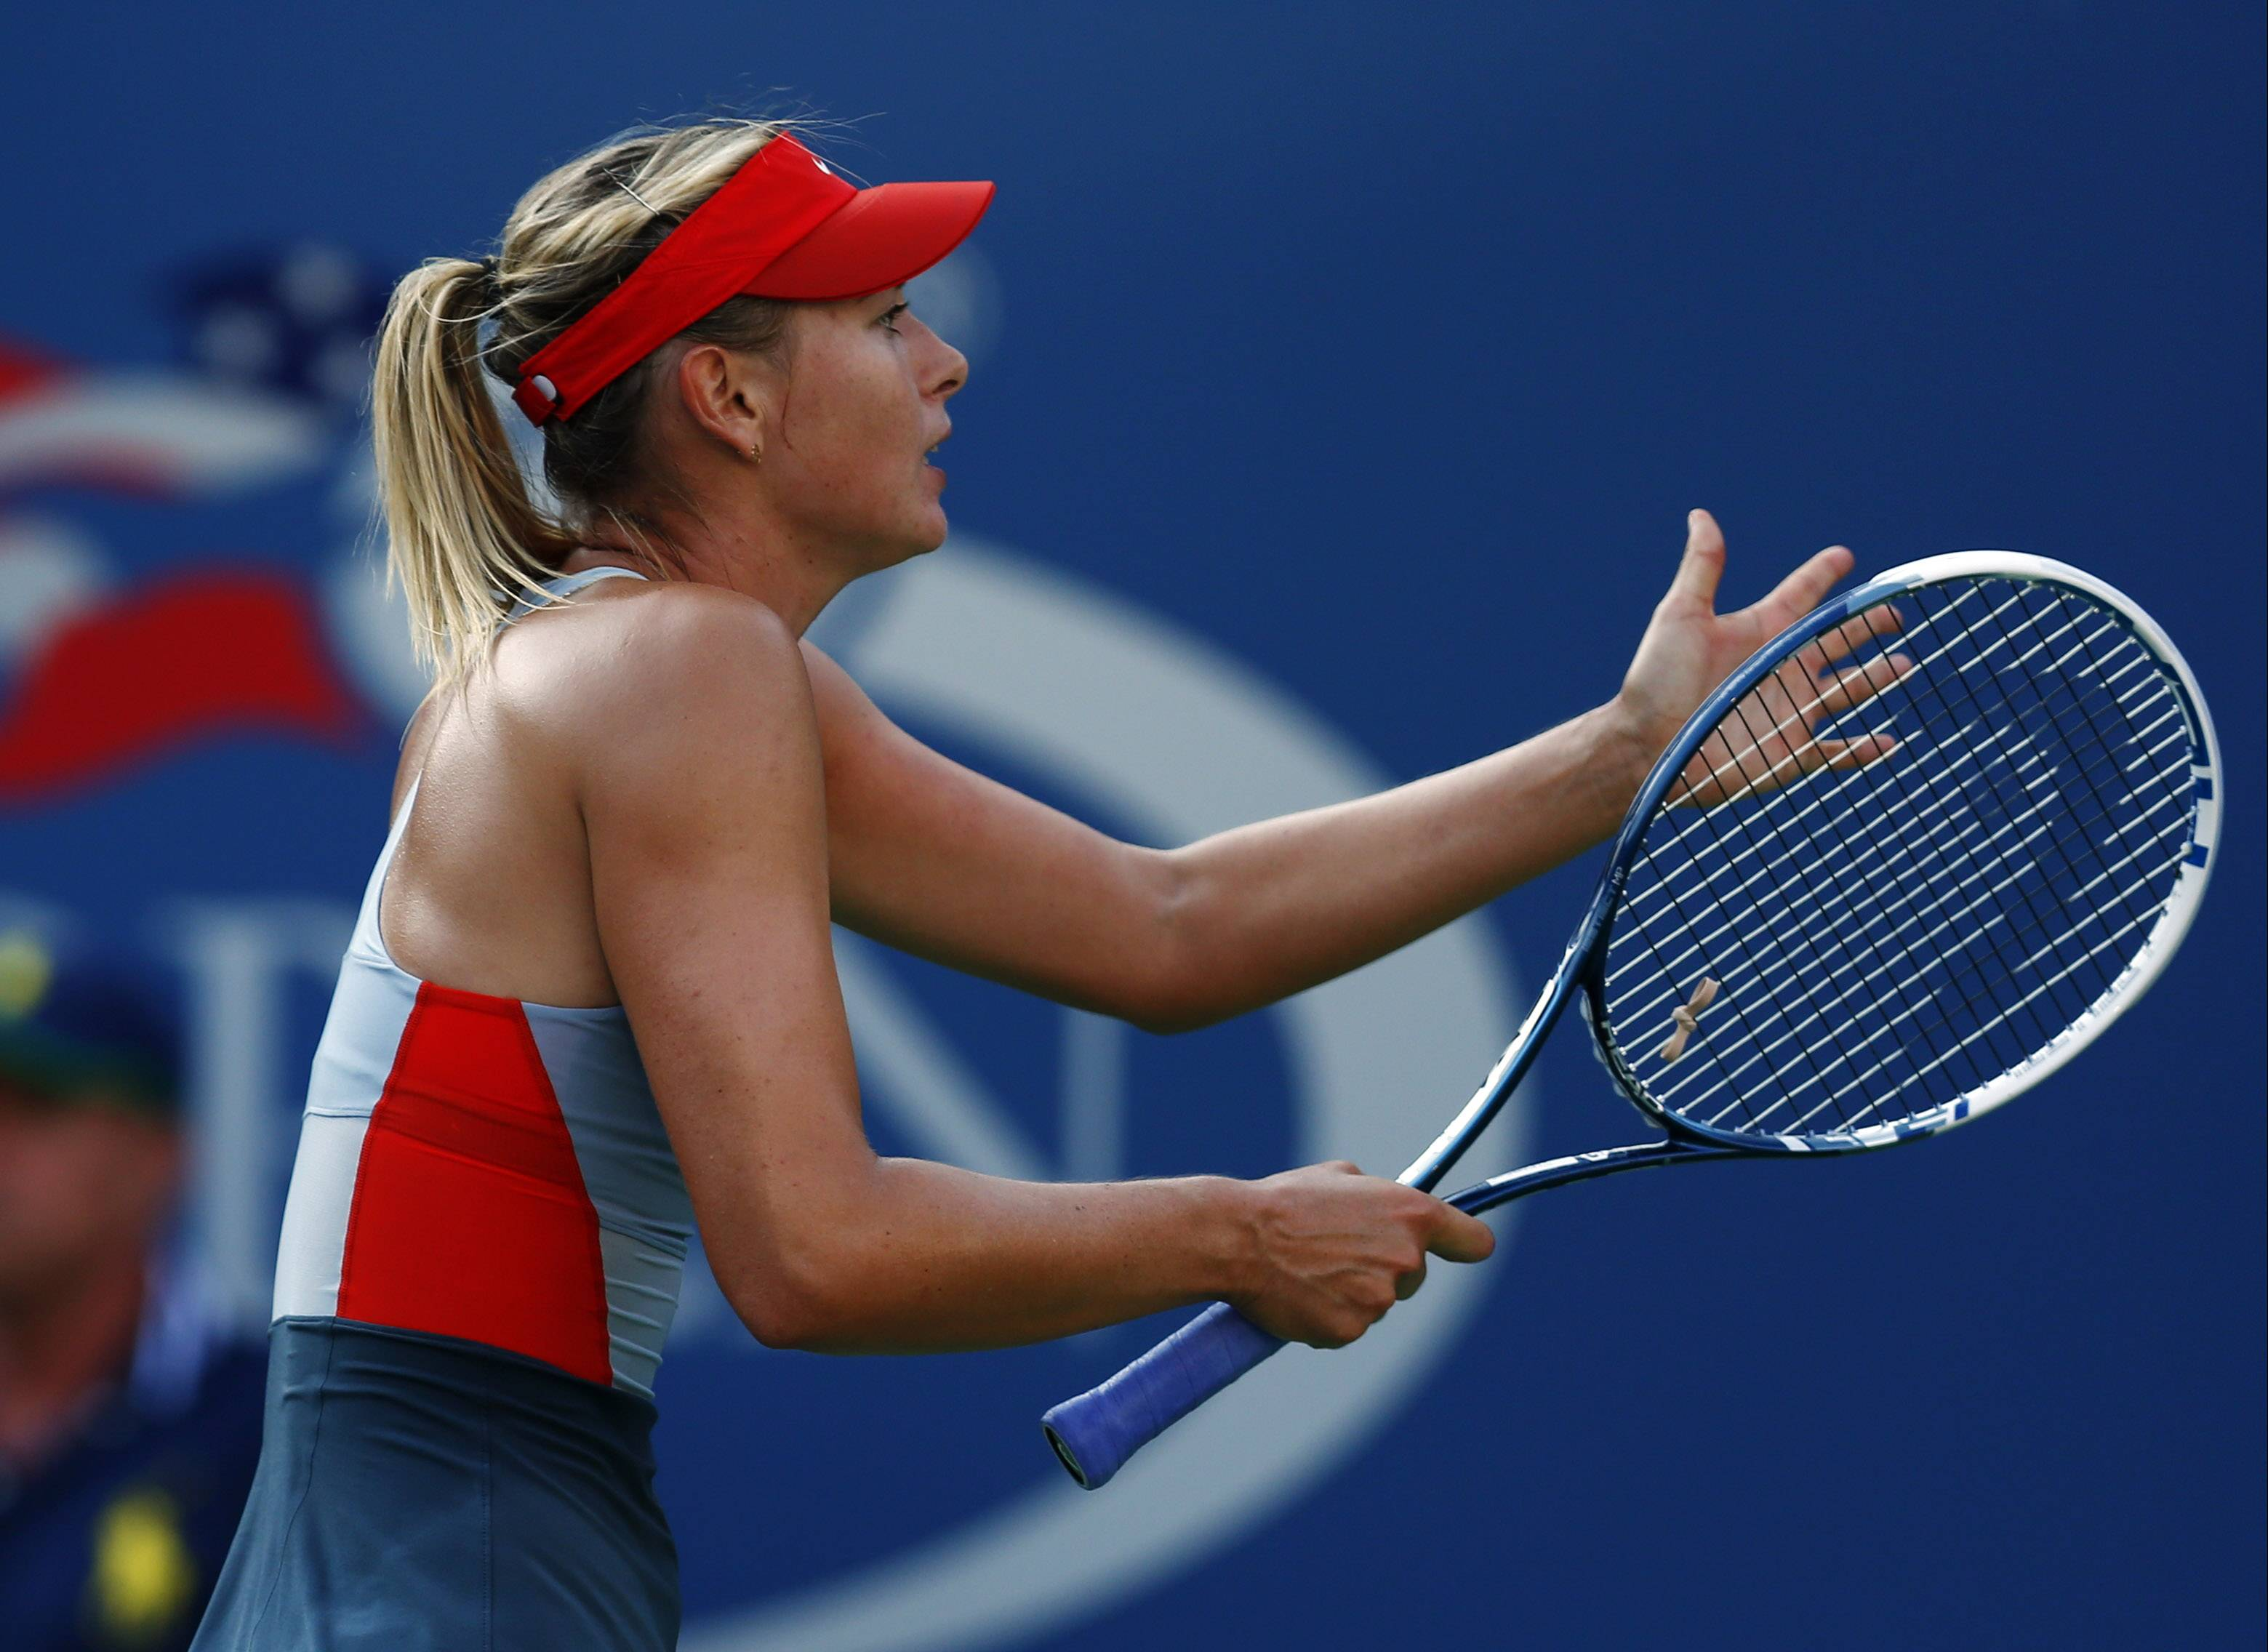 Maria Sharapova, of Russia, motions to the umpire during the second set against Alexandra Dulgheru, of Romania, during the second round of the 2014 U.S. Open tennis tournament, Wednesday, Aug. 27, 2014, in New York.